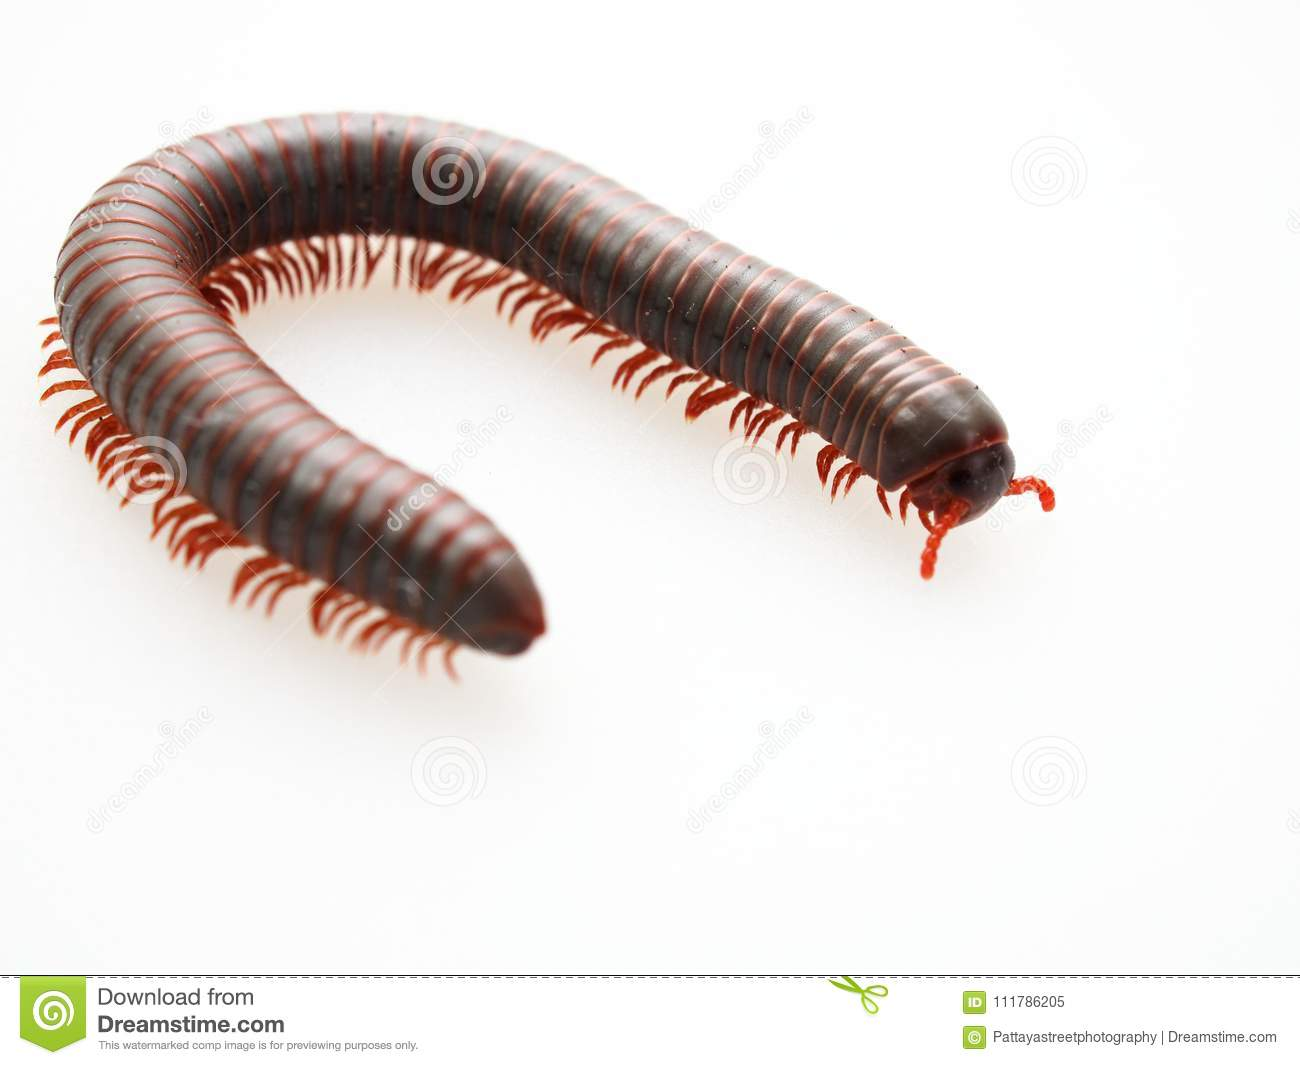 Dream Center Centipede, what does the Centipede dream to see 79